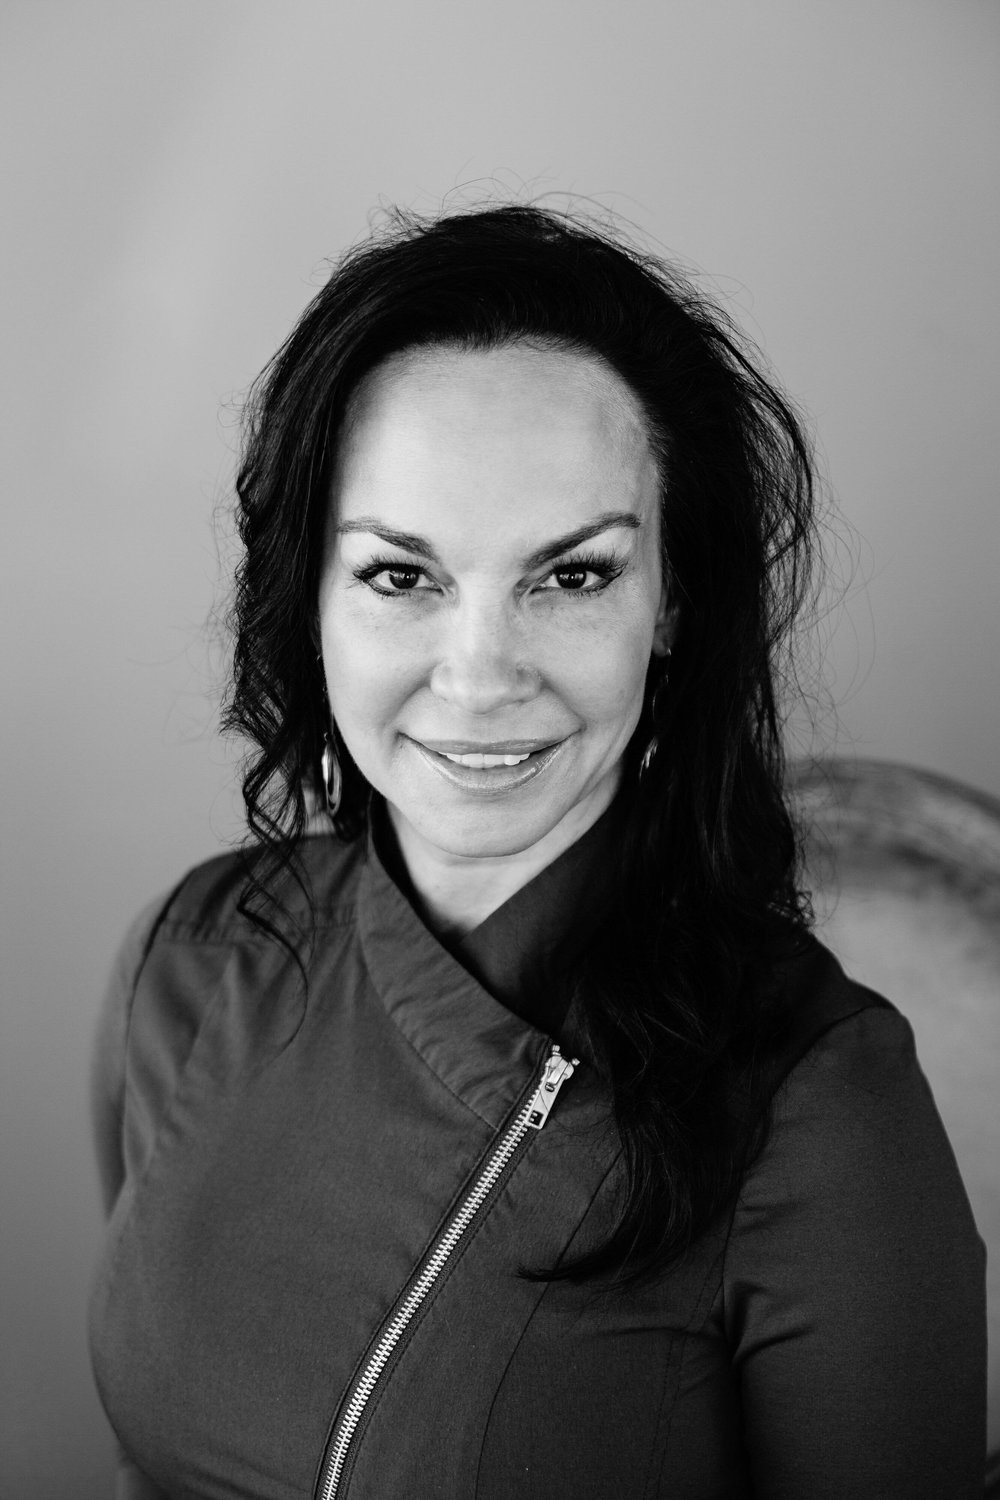 Candyce Bell, RN - Advanced Medical Aesthetics Nurse, Nurse Injector, Laser Technician, Skin Consultant